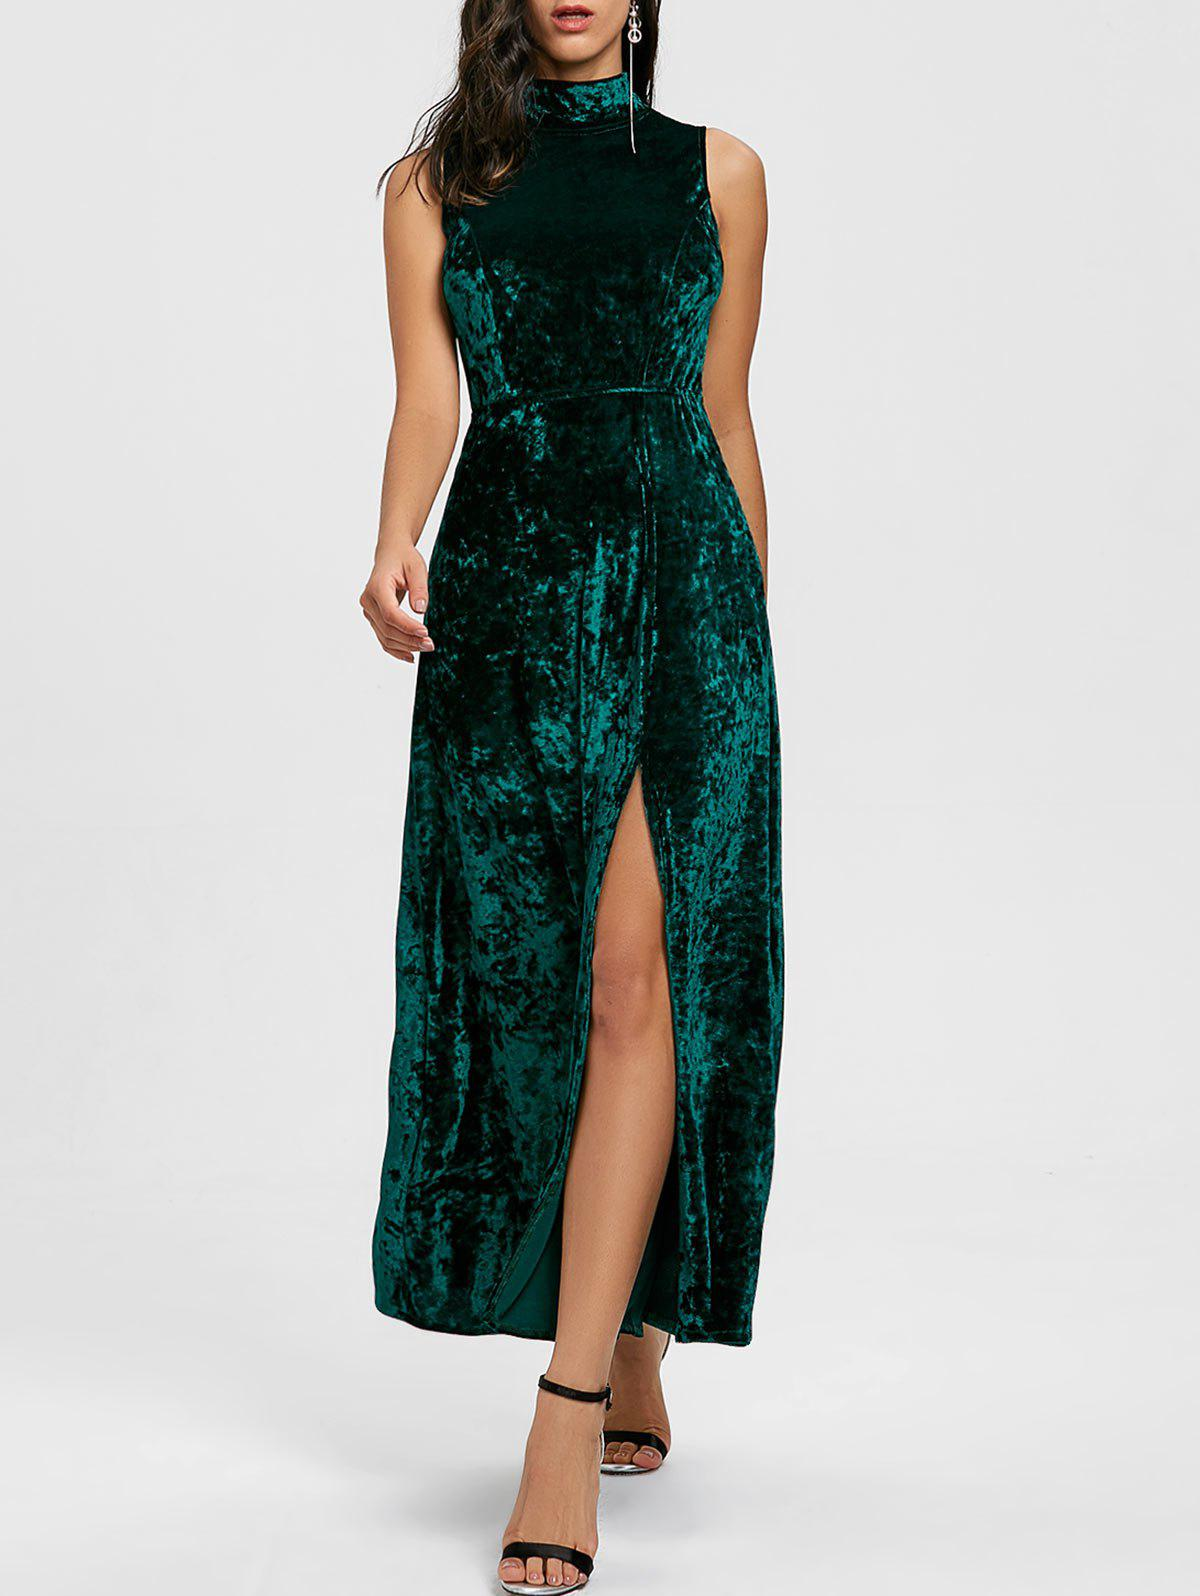 High Slit Backless Party Maxi Dress - BLACKISH GREEN L